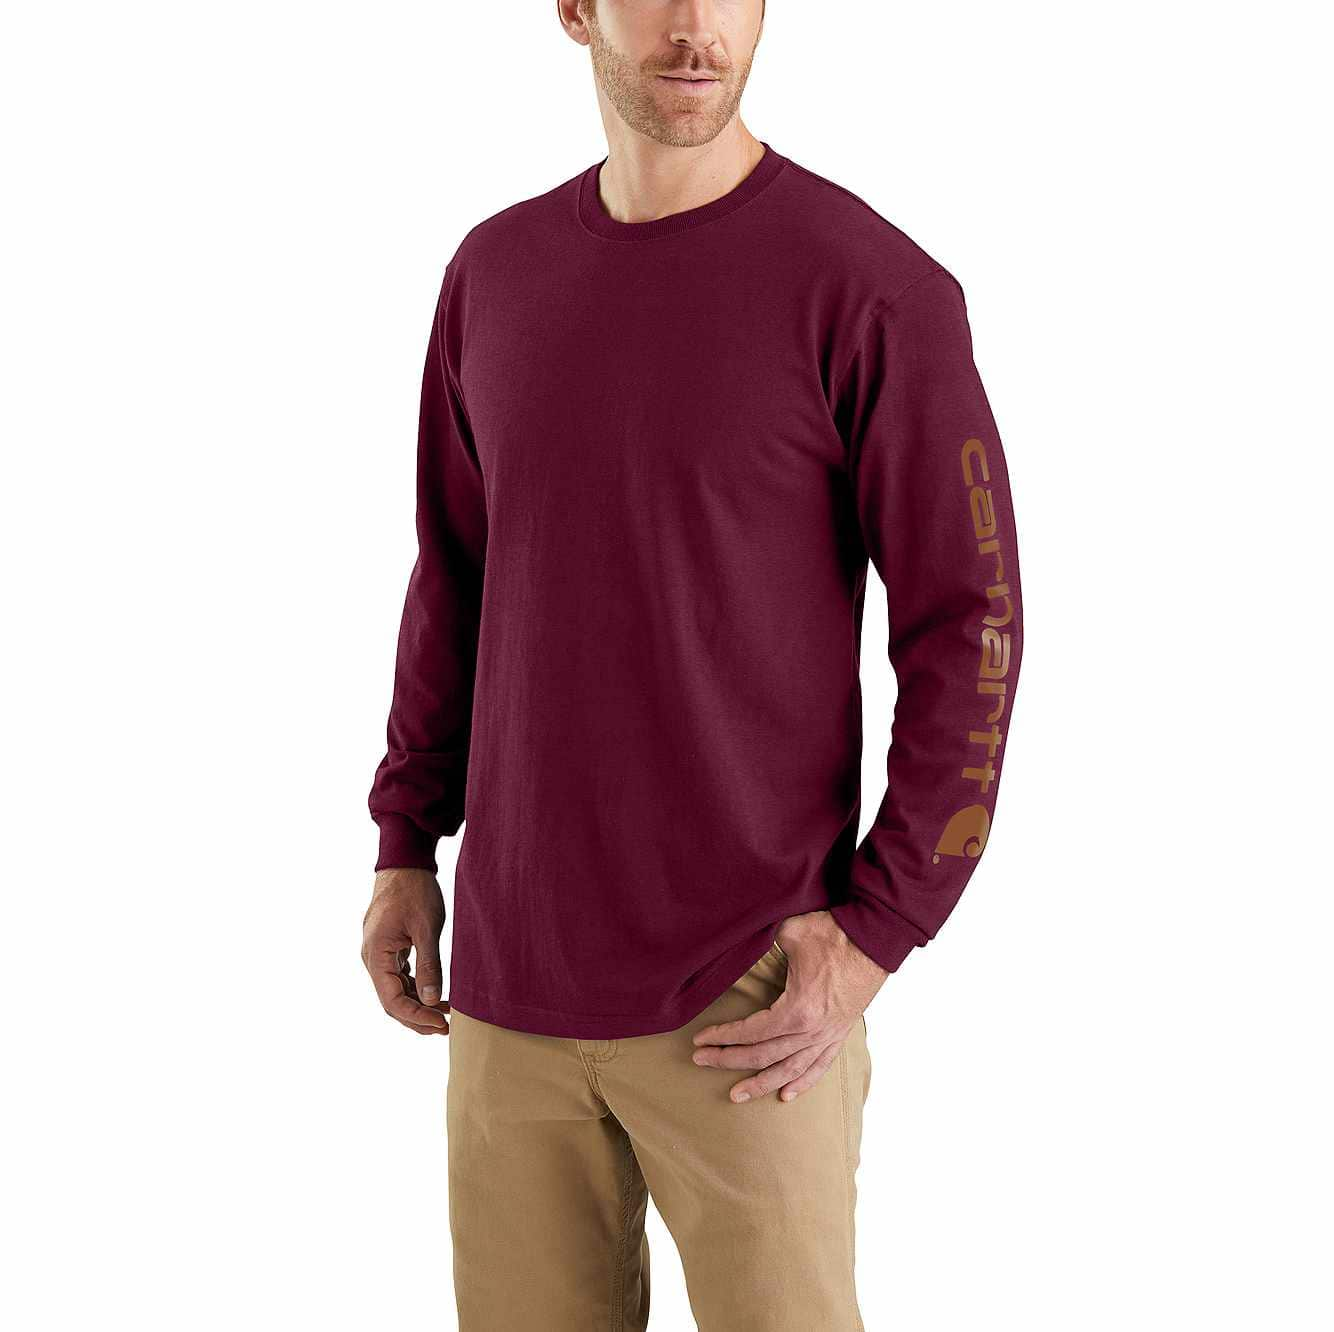 Picture of RELAXED FIT HEAVYWEIGHT LONG-SLEEVE LOGO SLEEVE GRAPHIC T-SHIRT